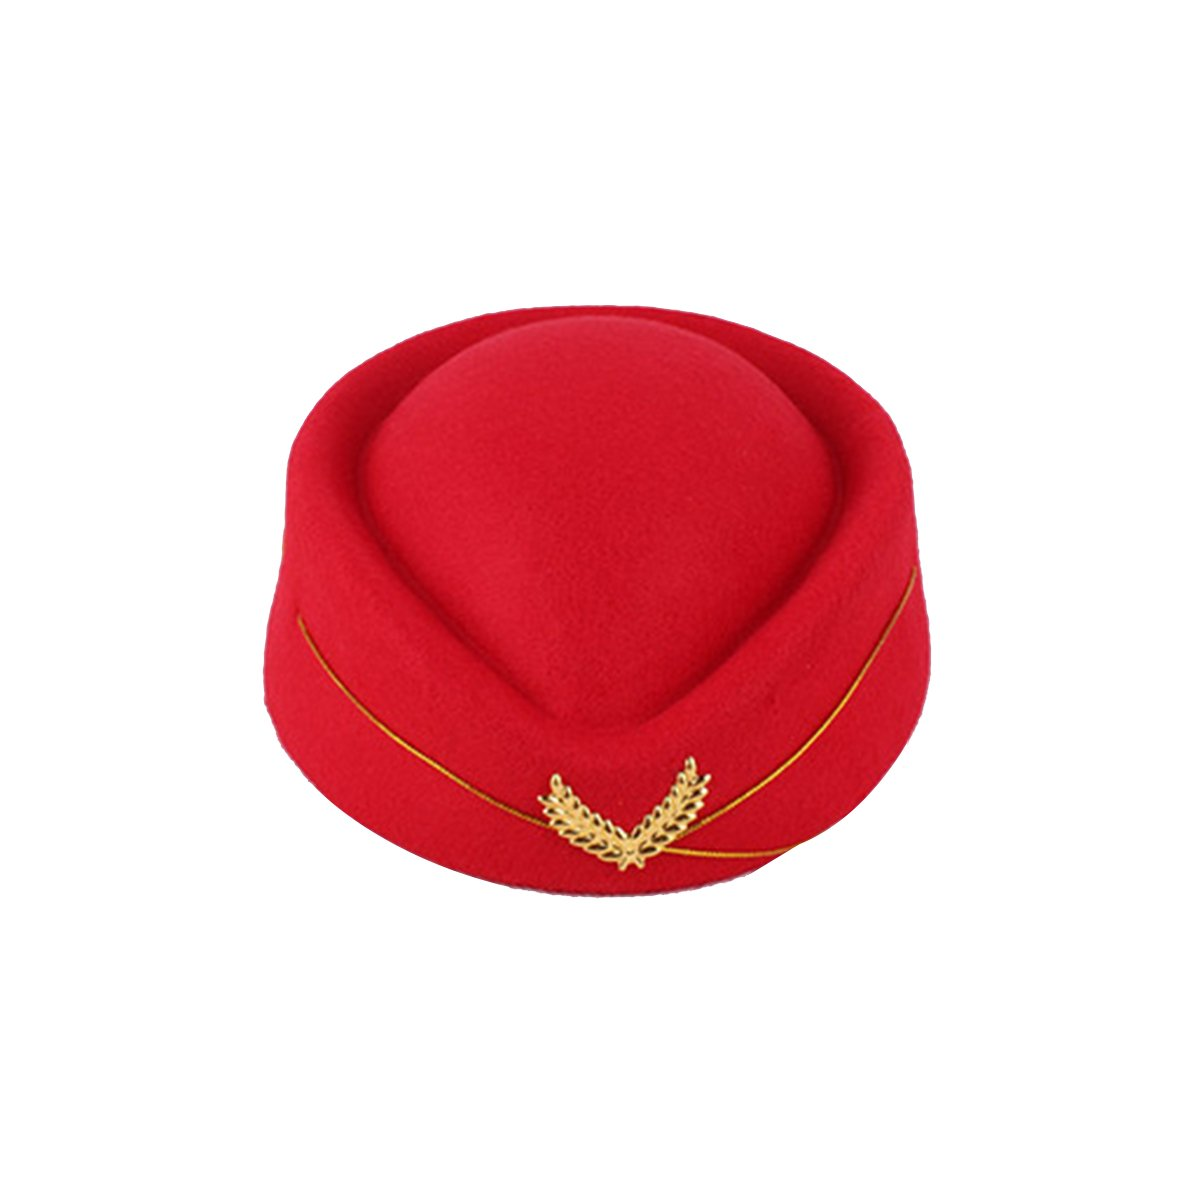 61ecb08f0c2 Get Quotations · BESTOYARD Stewardess Hat Wool Cap Flight Attendant Hat  Stewardess Cap For Costume Cosplay Costume accessories (